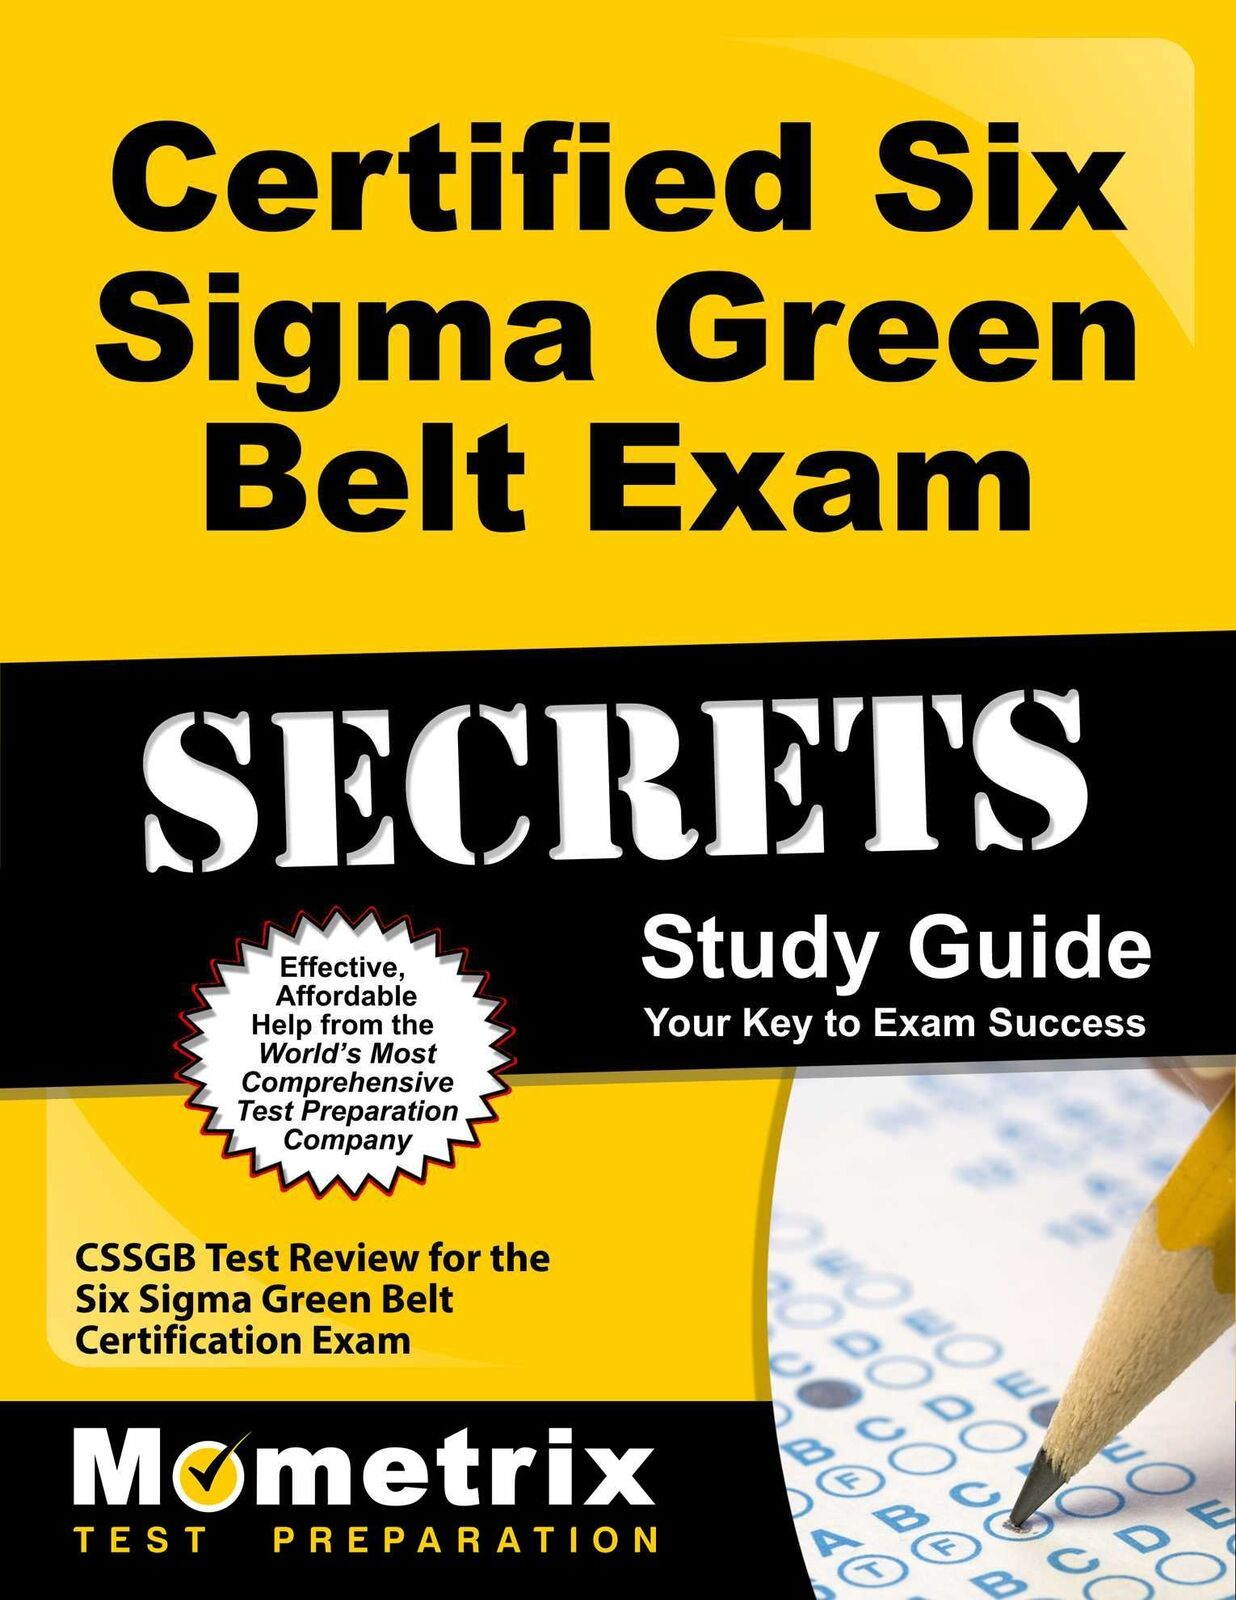 Certified six sigma green belt exam secrets study guide cssgb picture 1 of 1 1betcityfo Gallery